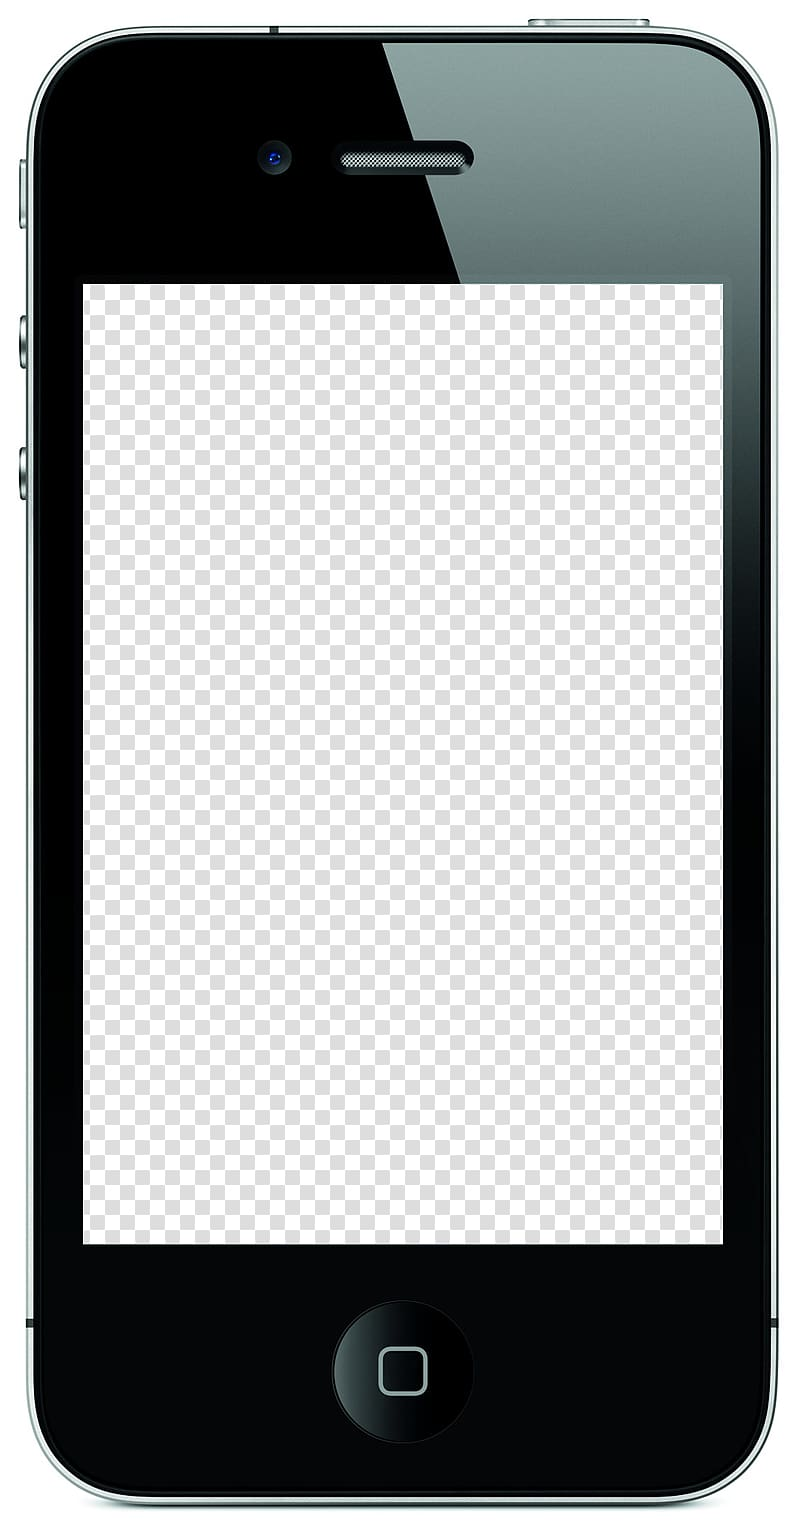 Iphone 4 s clipart banner library Black iPhone 4, iPhone 4S iPhone 5 Responsive web design ... banner library